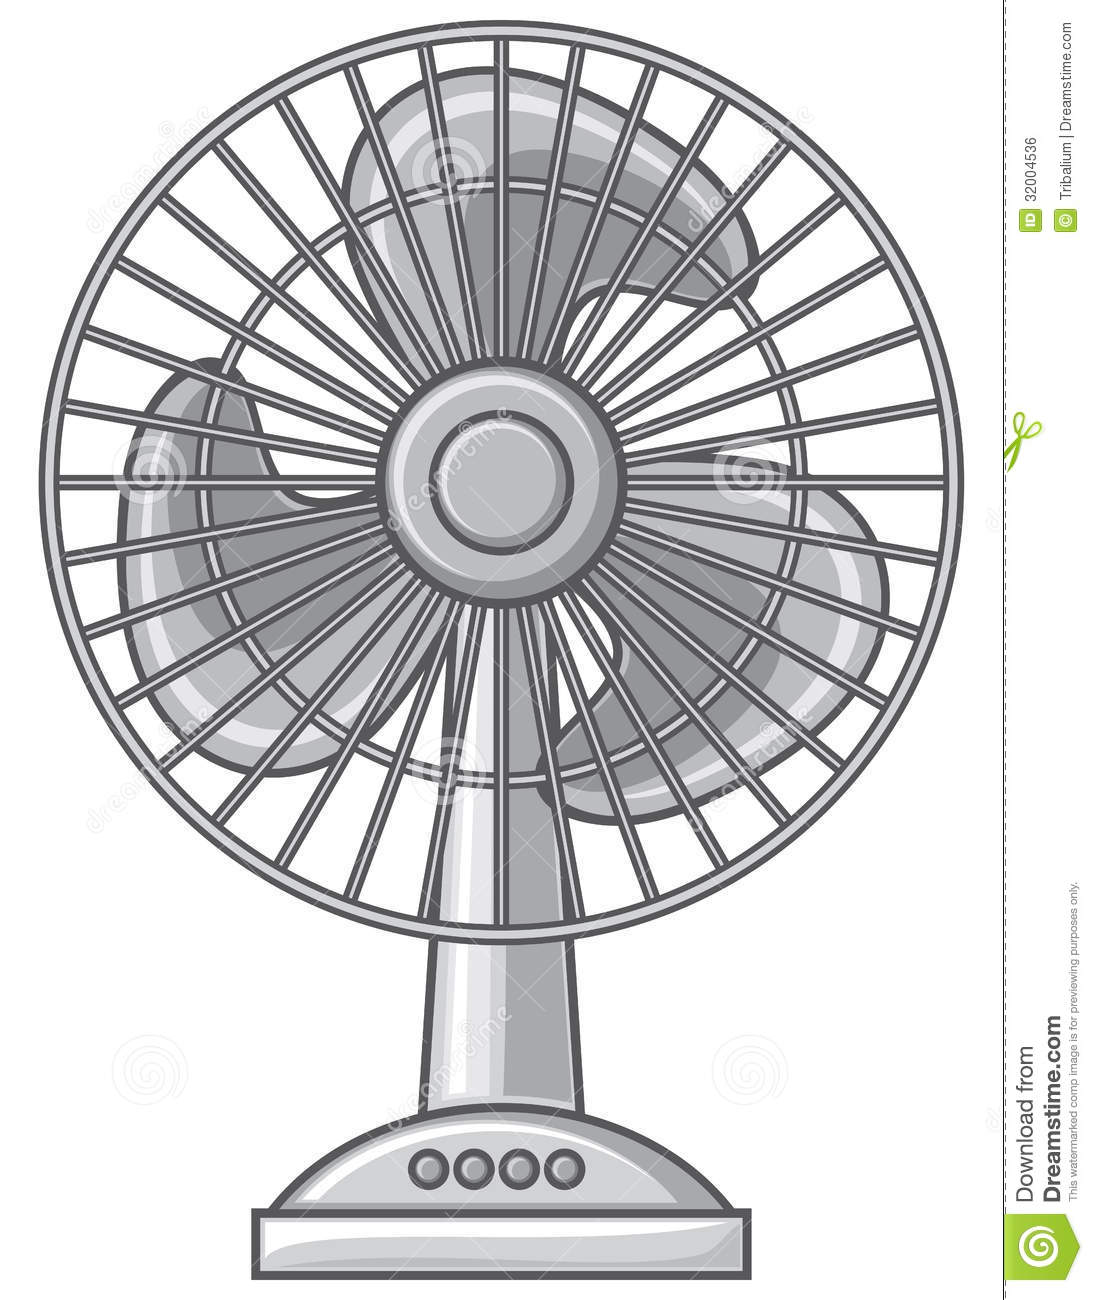 Electric Fan Clip Art : Blower fan clipart suggest